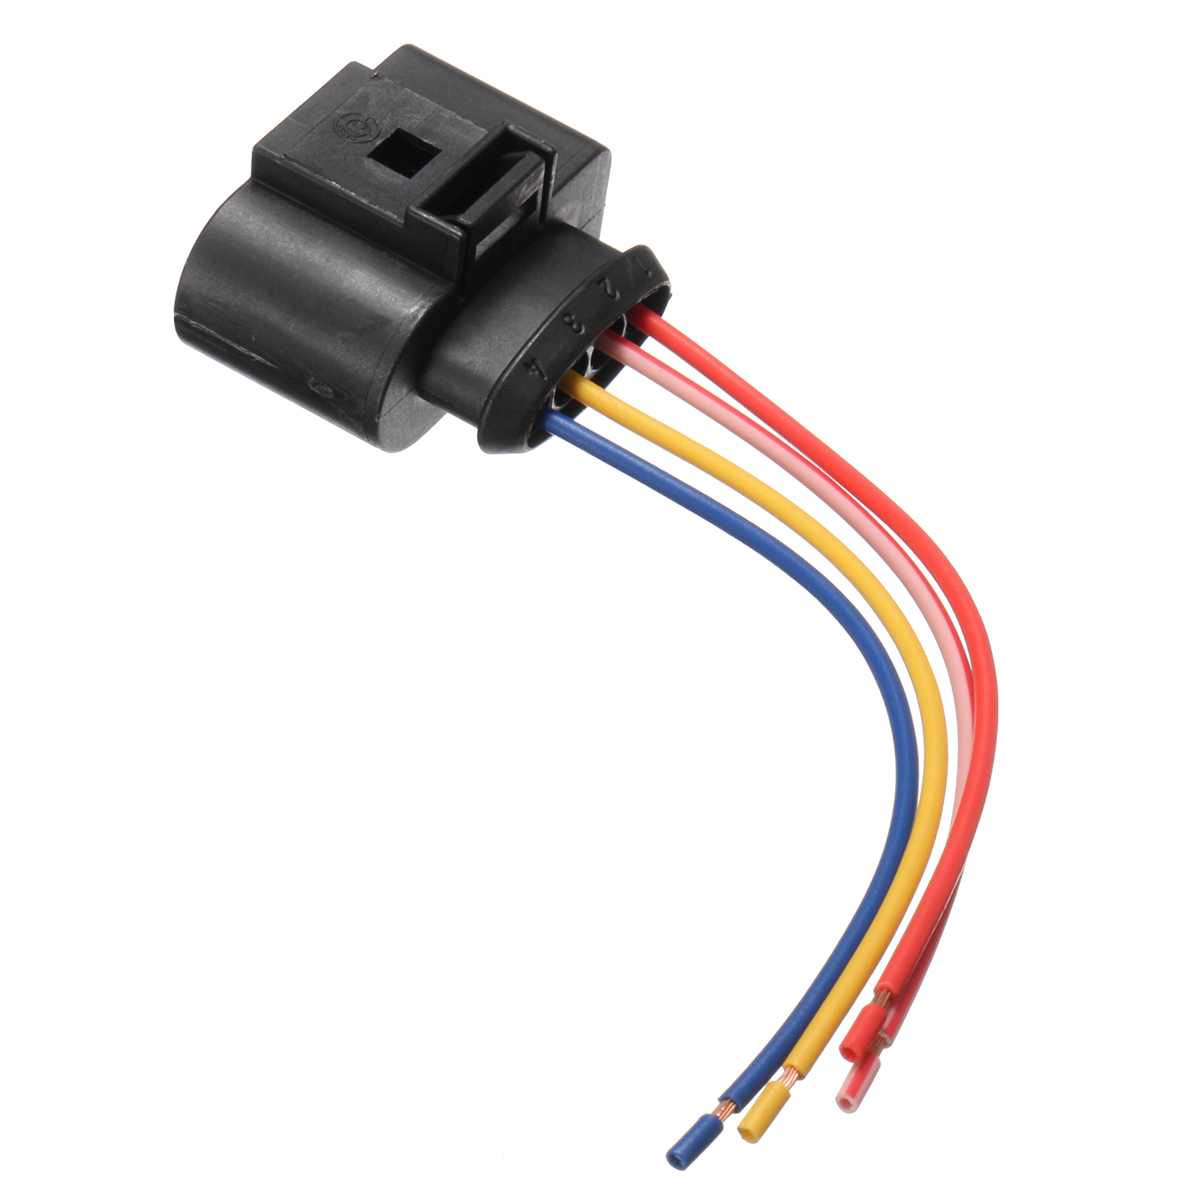 Groovy Oem Ignition Coil Connector Plug Pack Wiring Loom For Audi Vw Skoda Wiring Cloud Nuvitbieswglorg